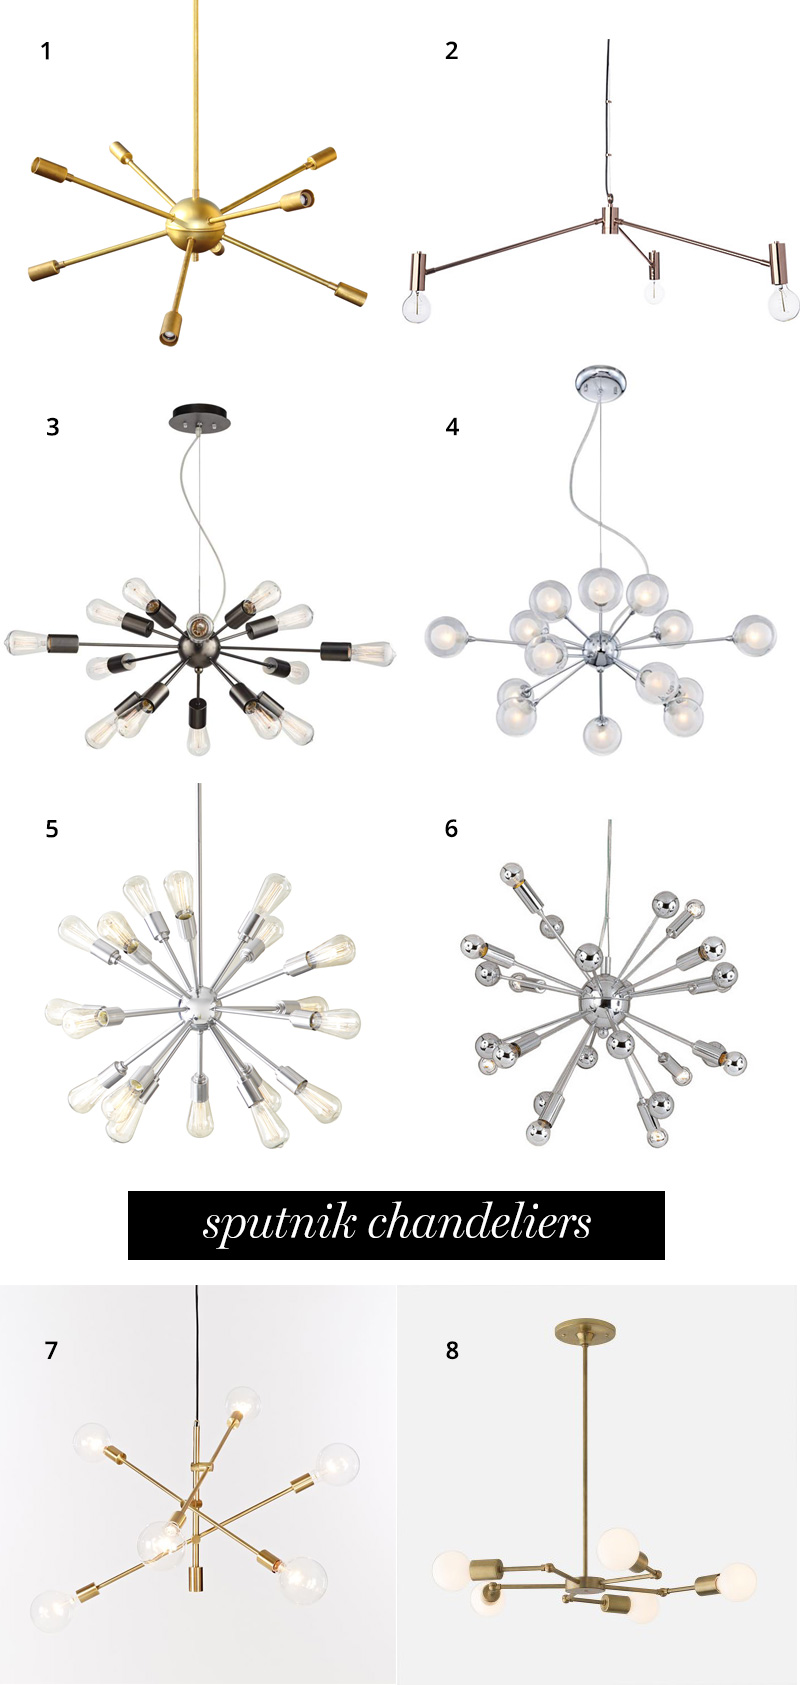 Sputnik chandeliers that will bring mid-century style to any dining room | A Girl Named PJ